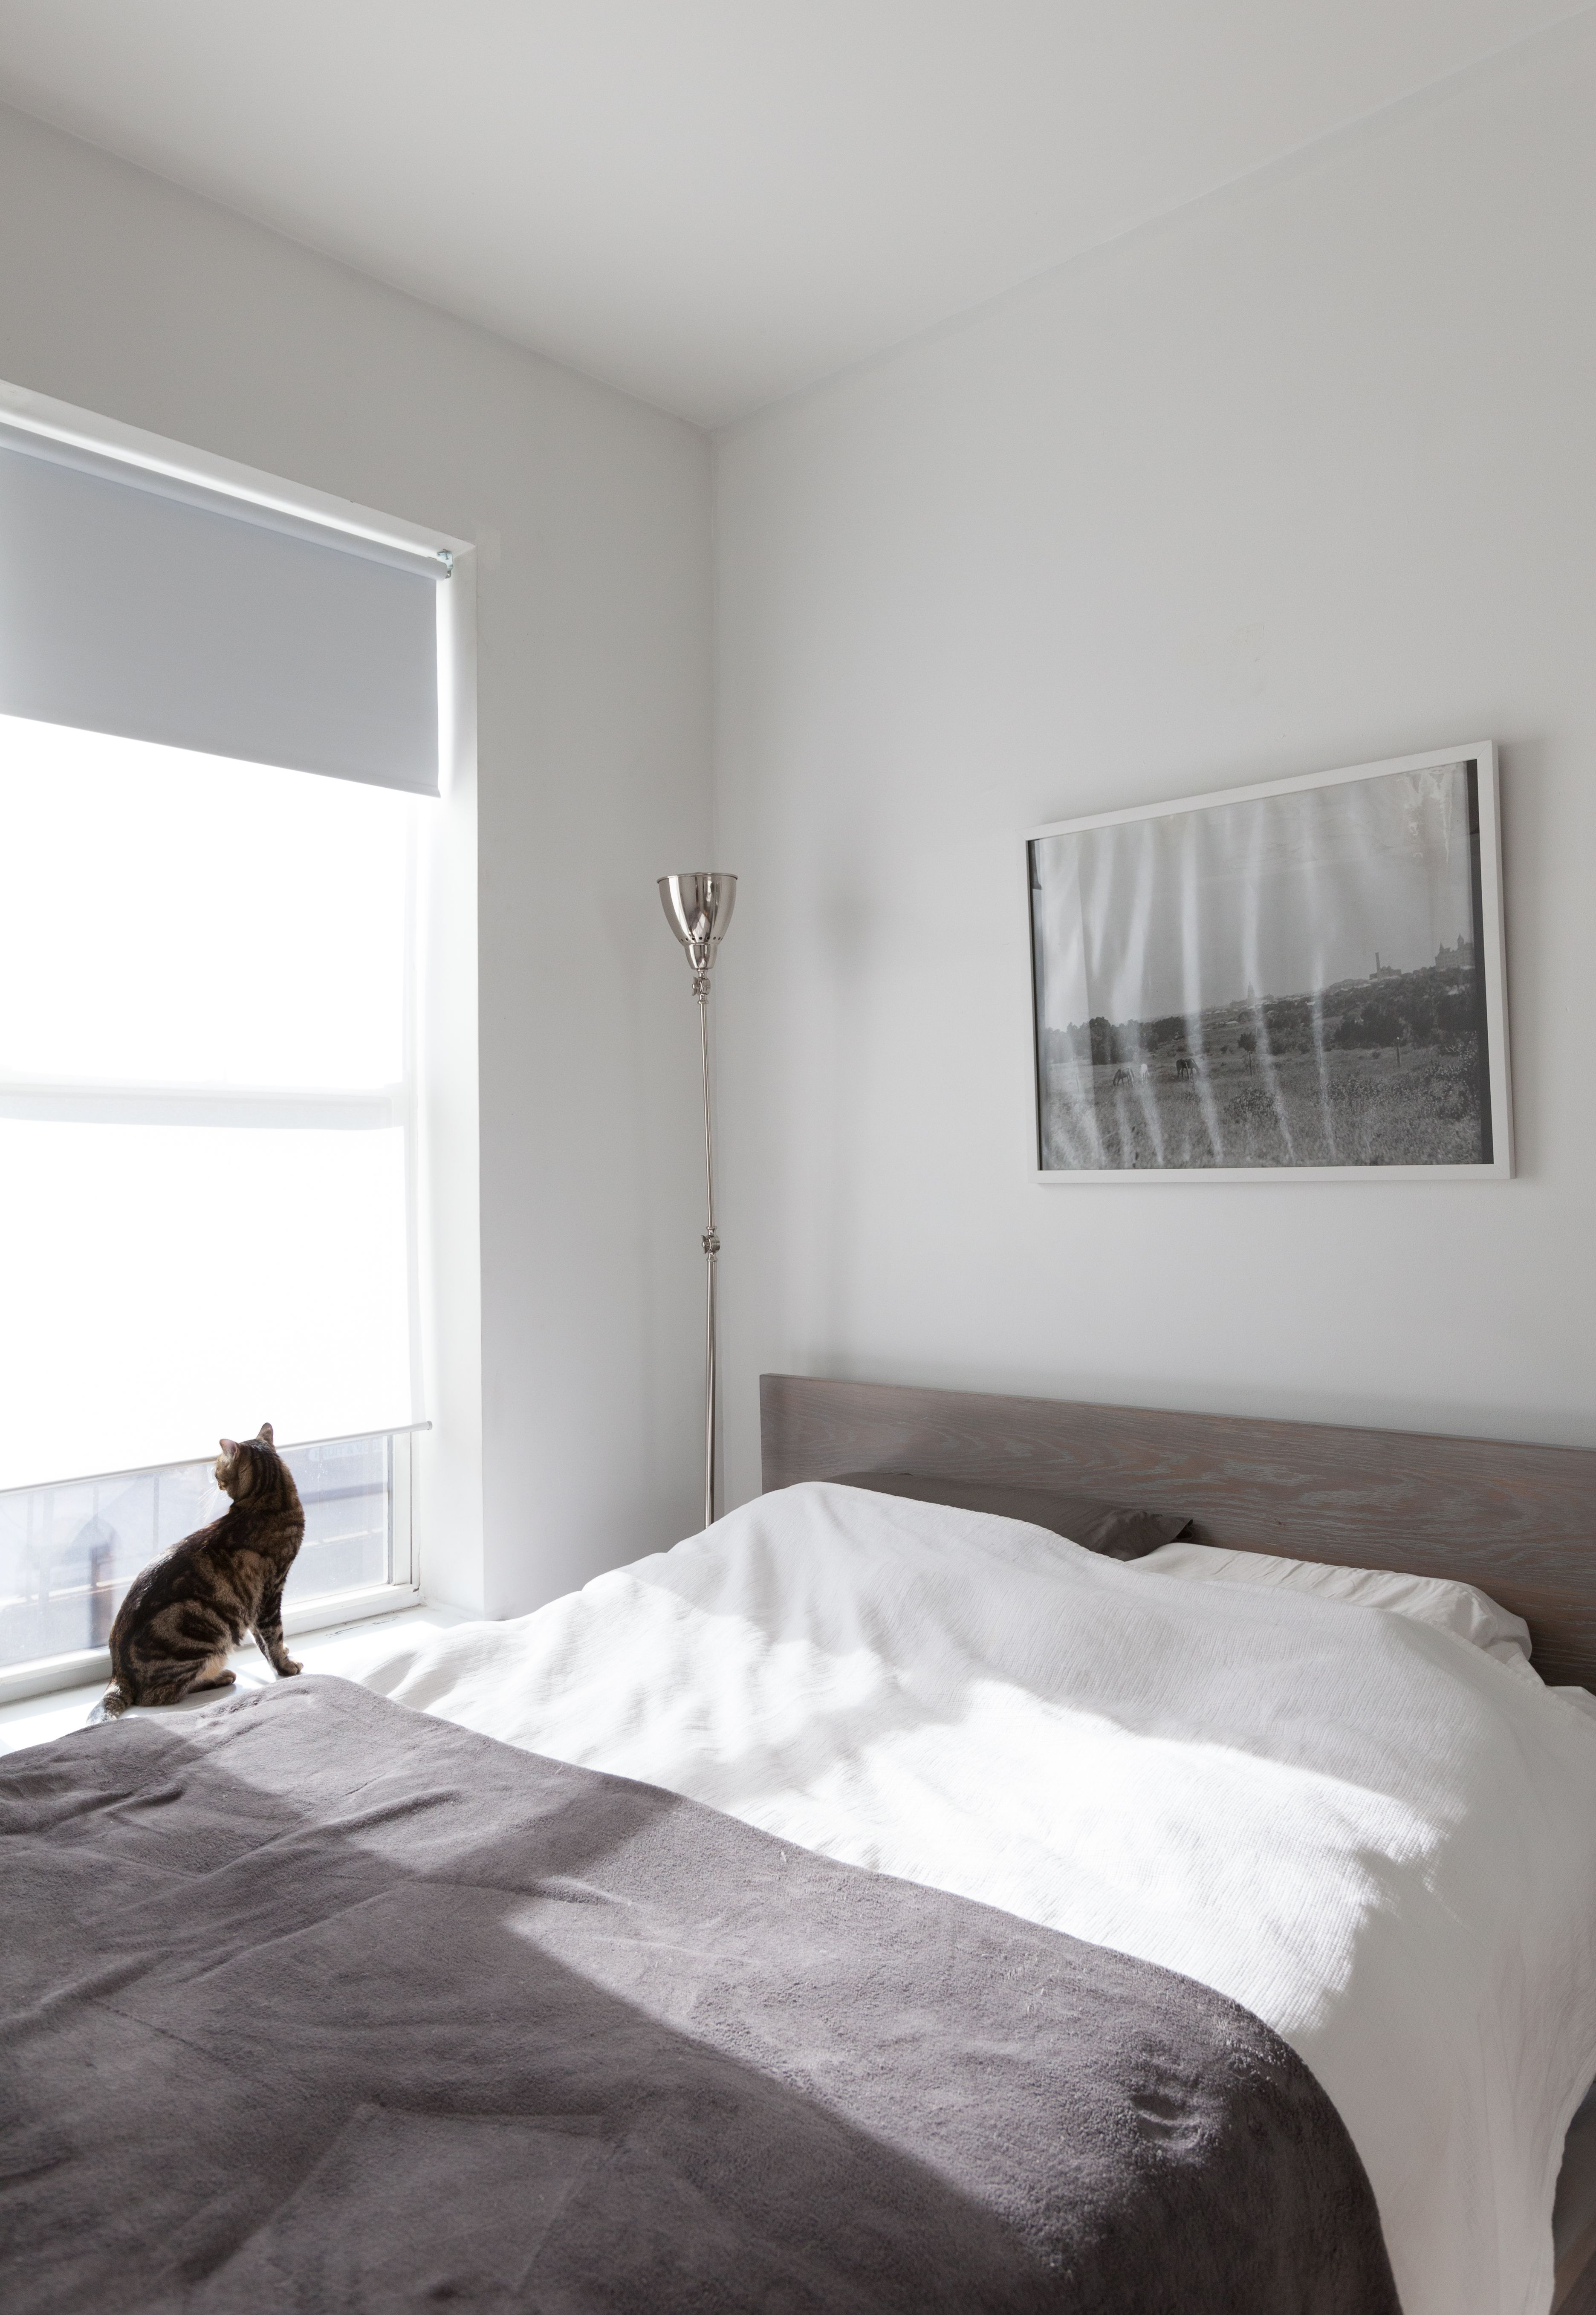 Gif Magic See How Color Changes A Super Small Space Minimalist Bedroom Minimal Bedroom Design Modern Minimalist Bedroom Minimalist room colors gif